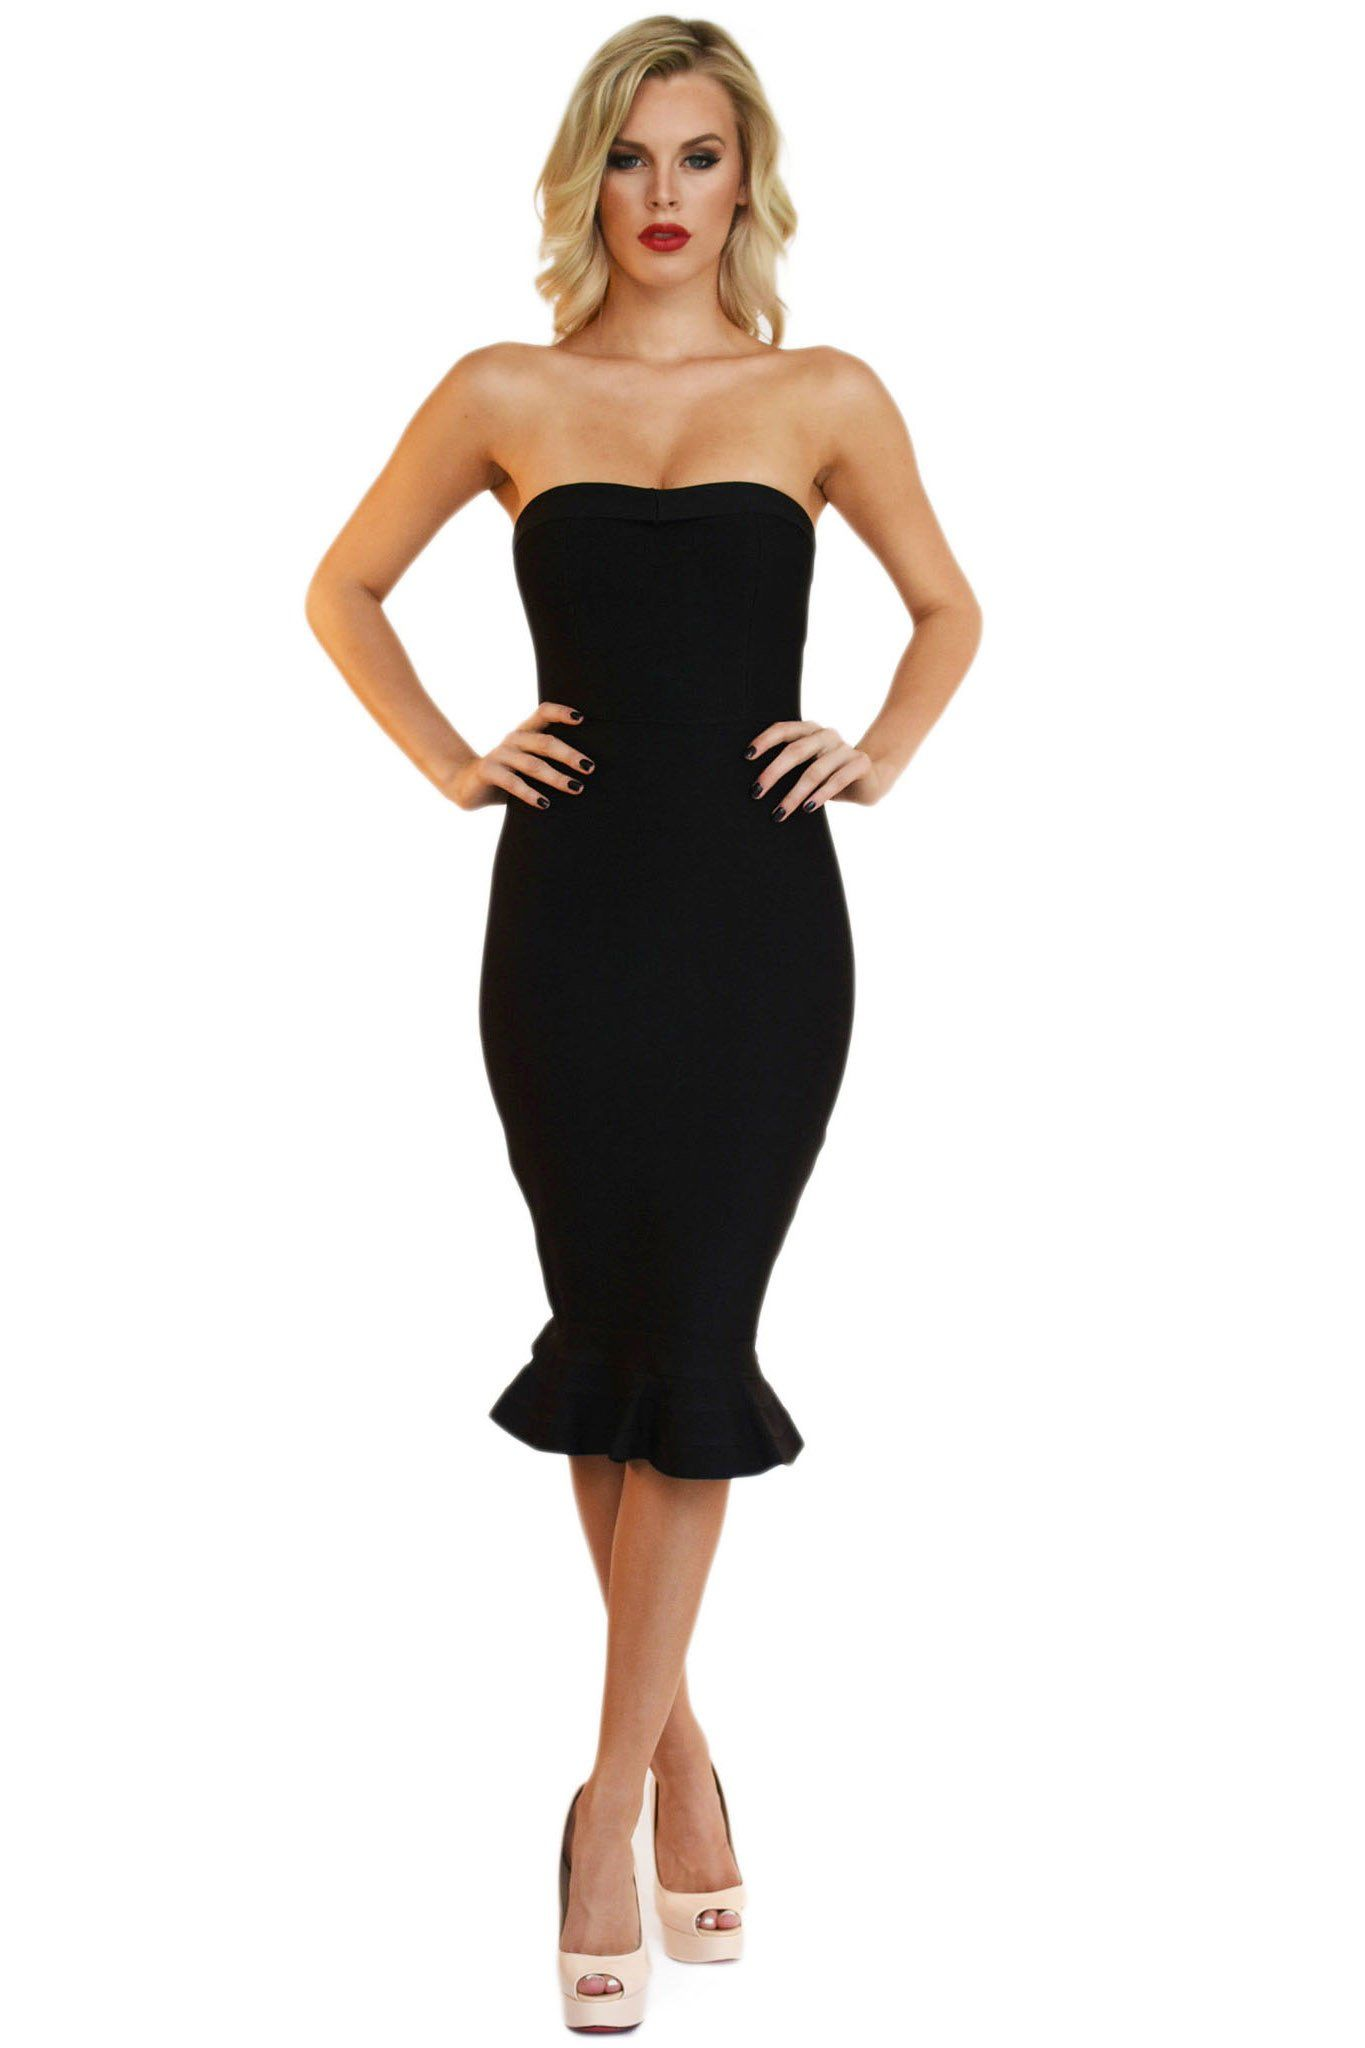 3d59ffe84ee3 Black sleeveless strapless midi bandage dress with subtle sweetheart  neckline and peplum fishtail hem design